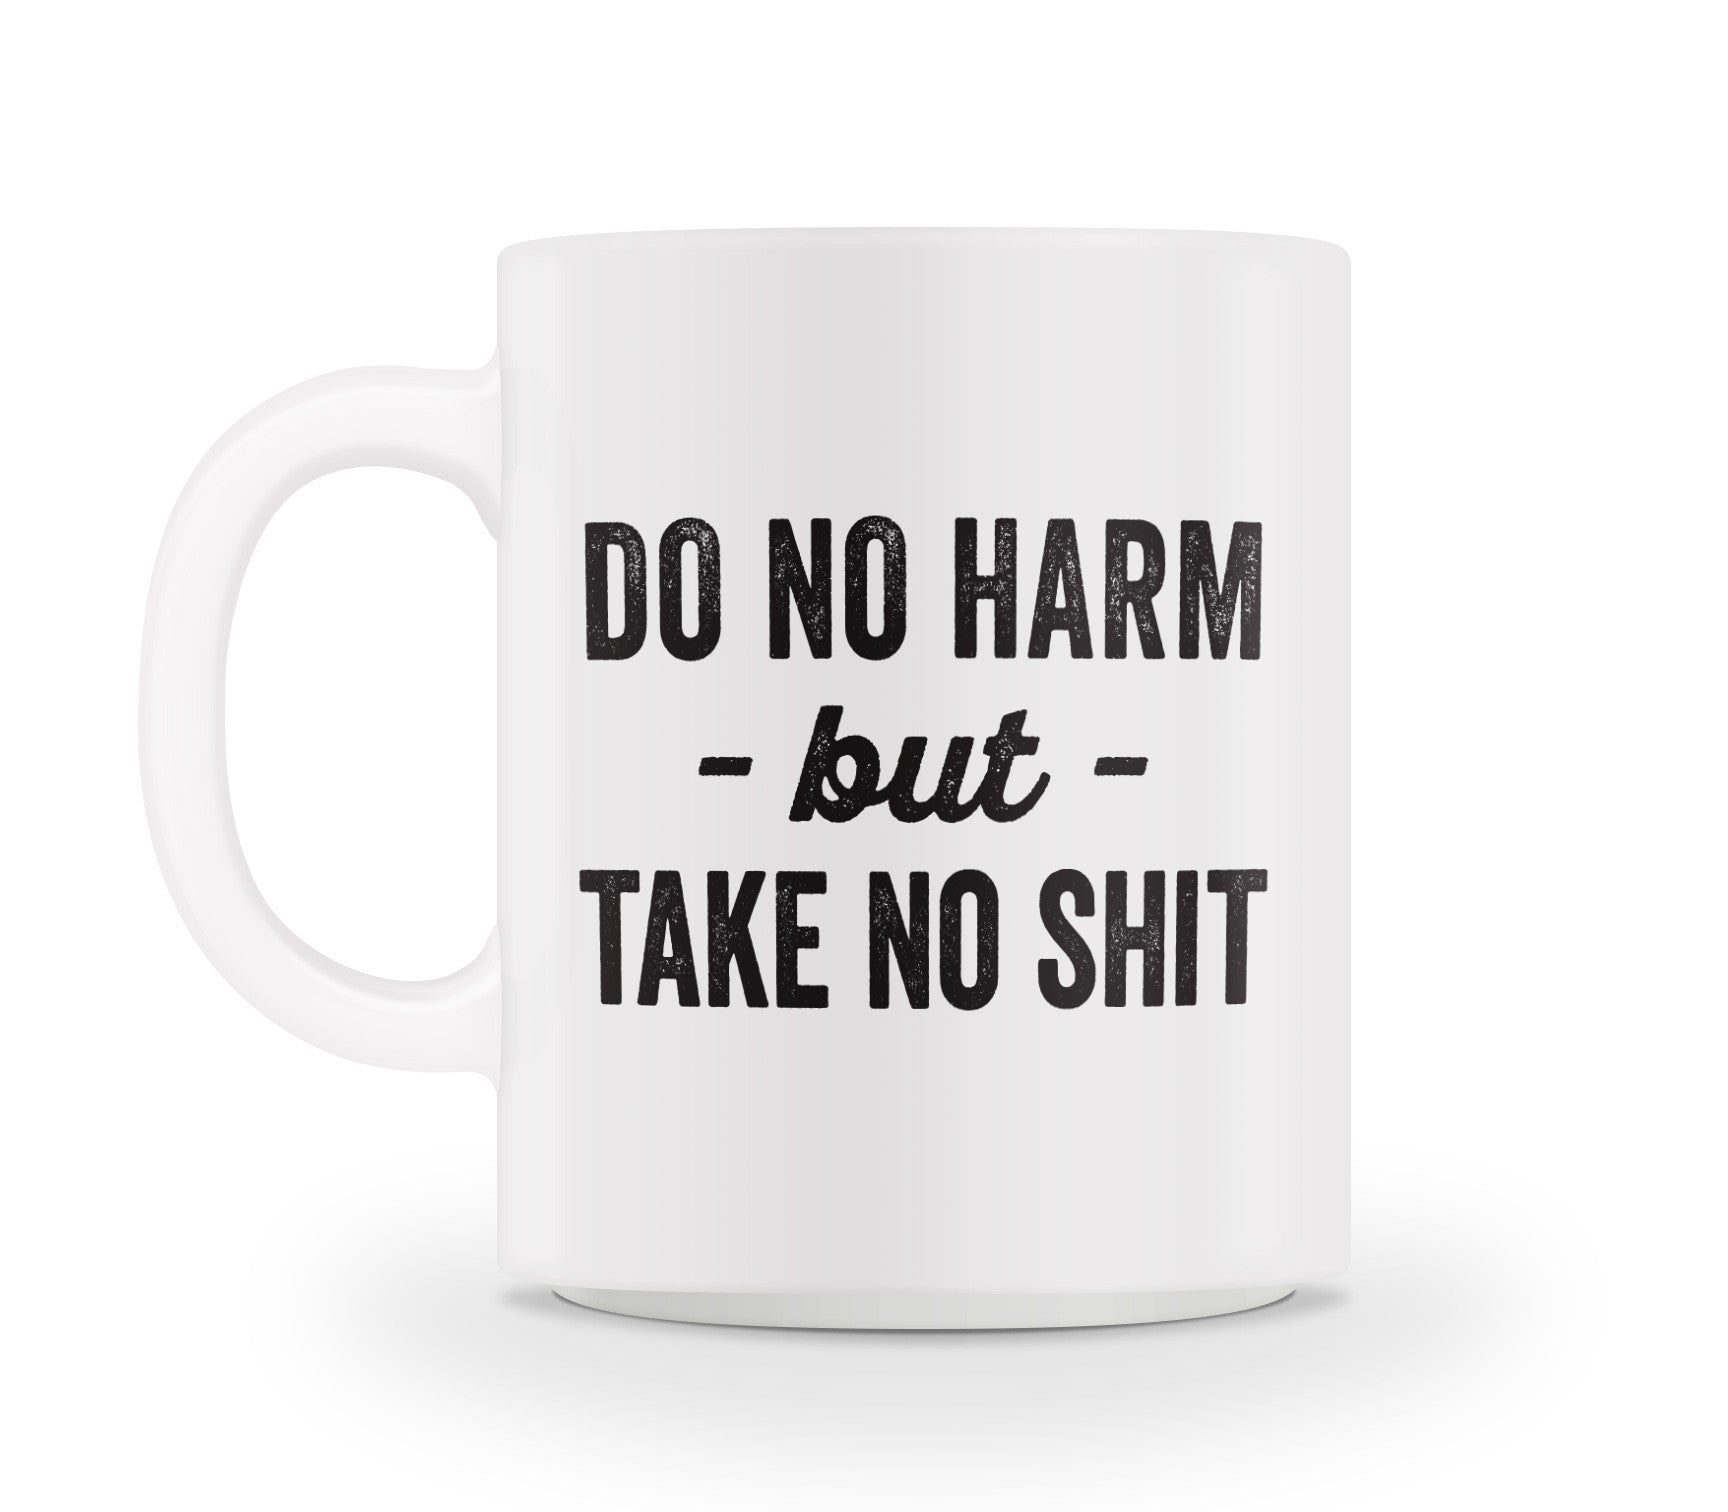 Do no harm but take no shit!